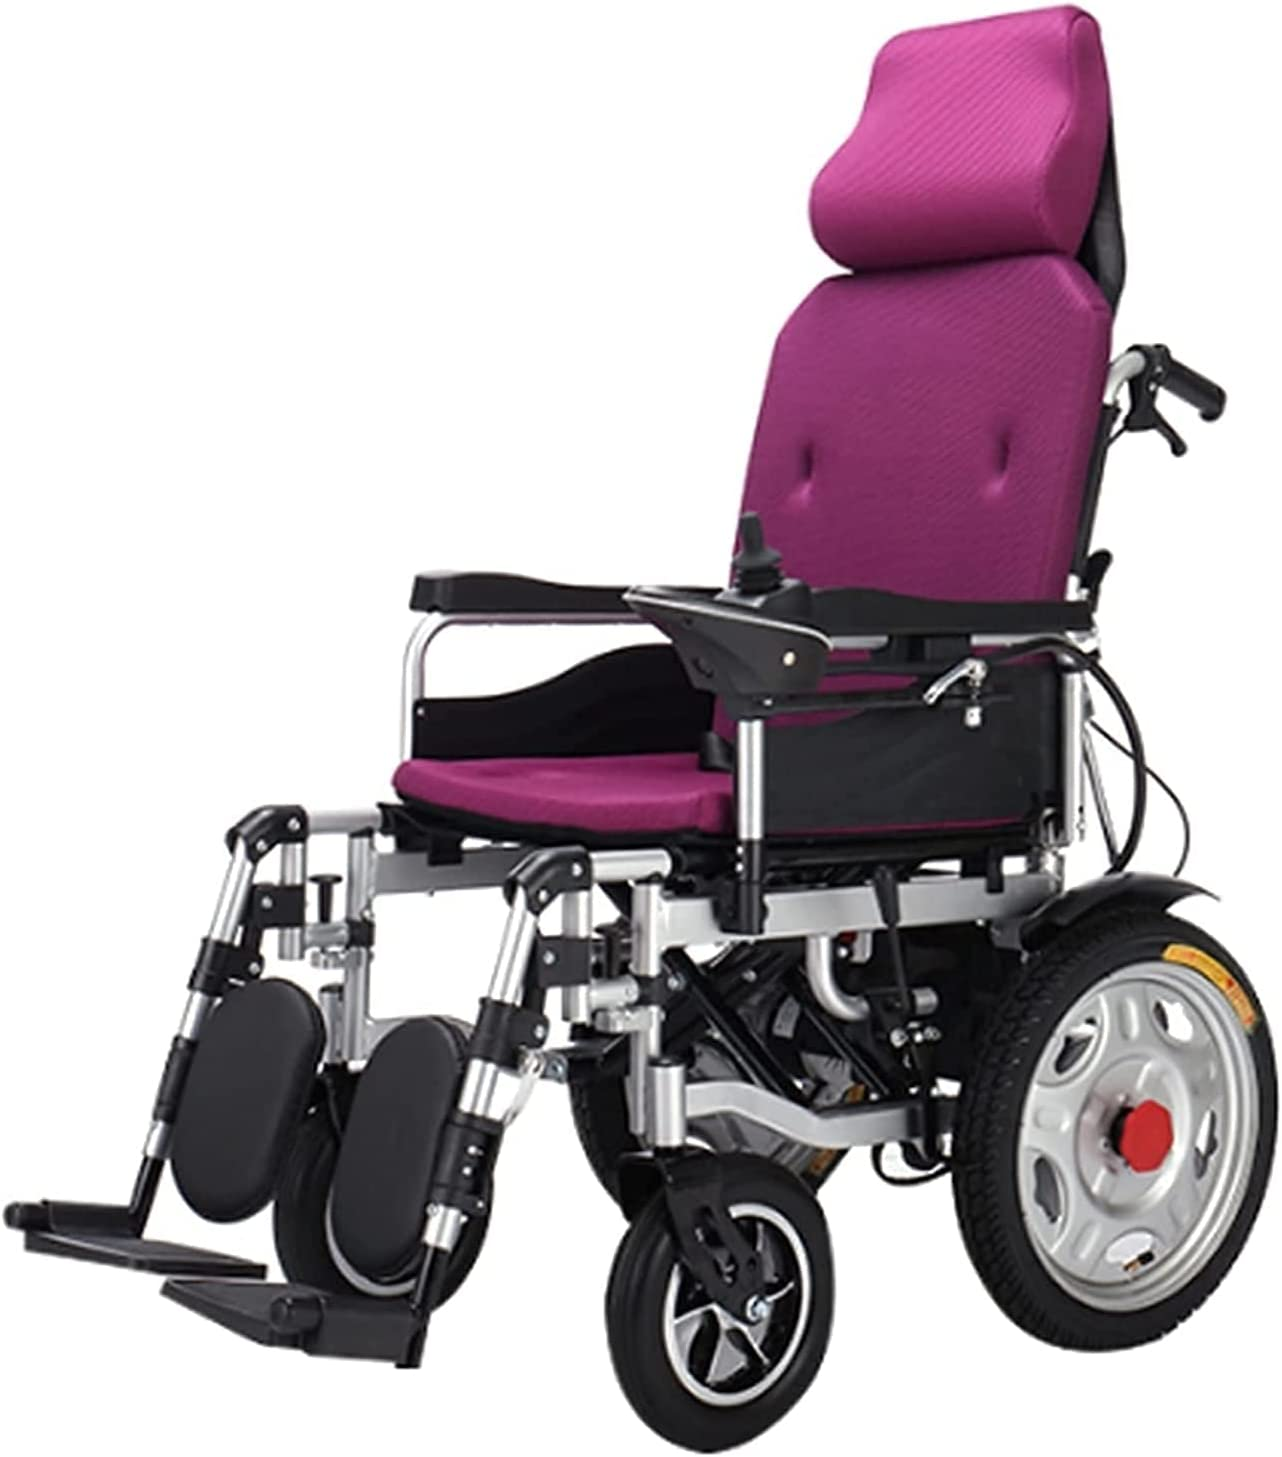 Electric Wheelchair Limited Special Price Standing Easy Four- Bombing new work Control to